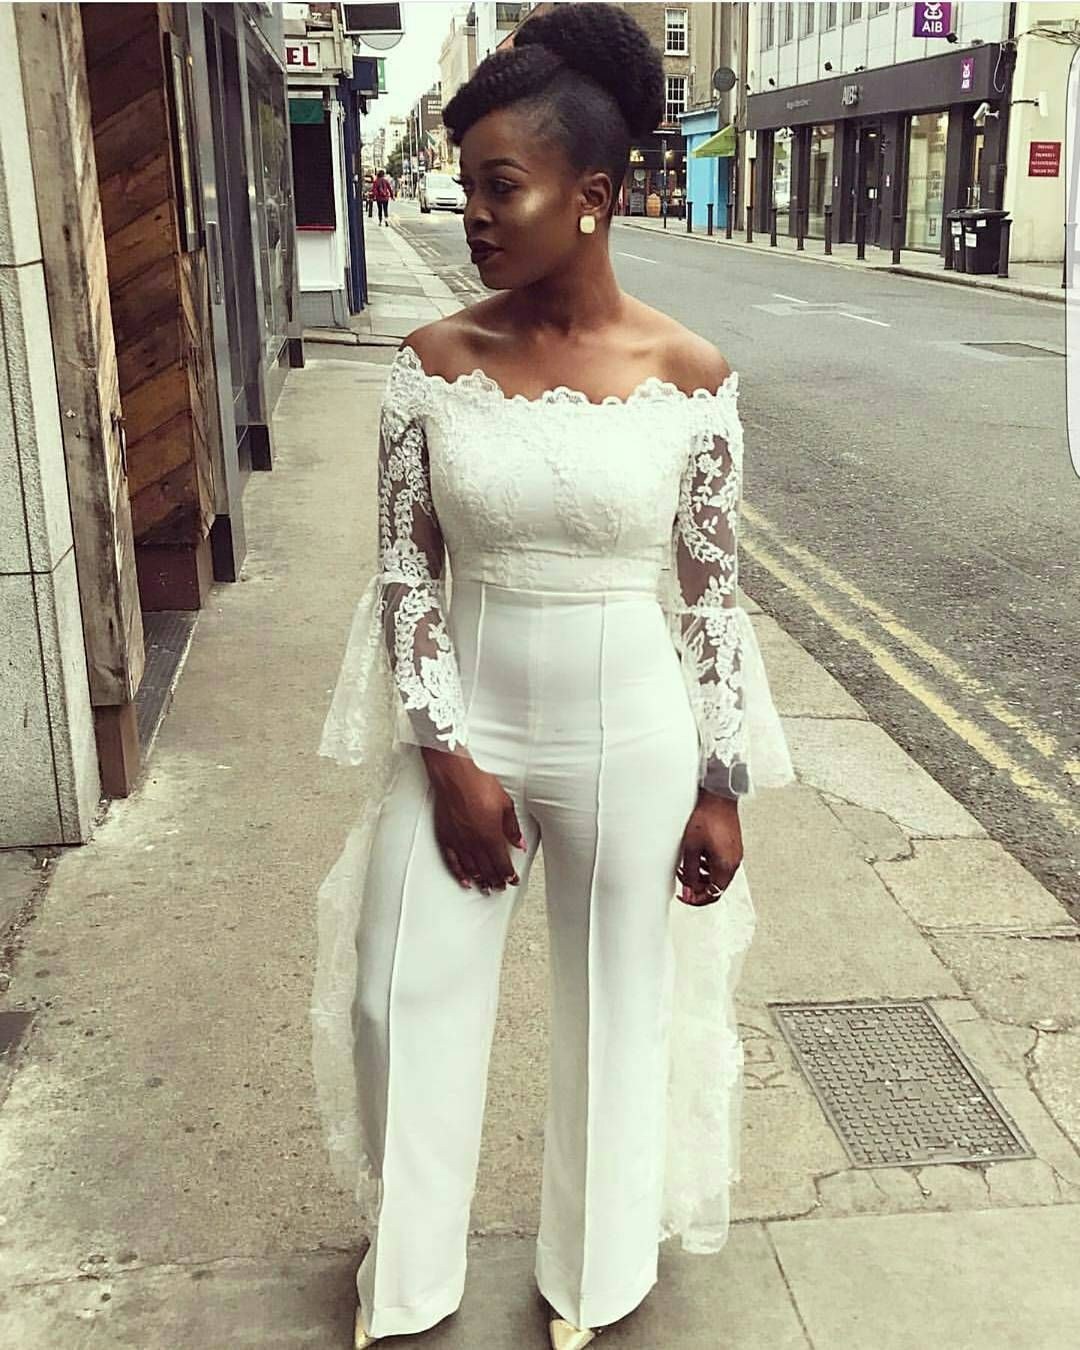 Serving Brides Some Wedding Reception Outfits Jumpsuits